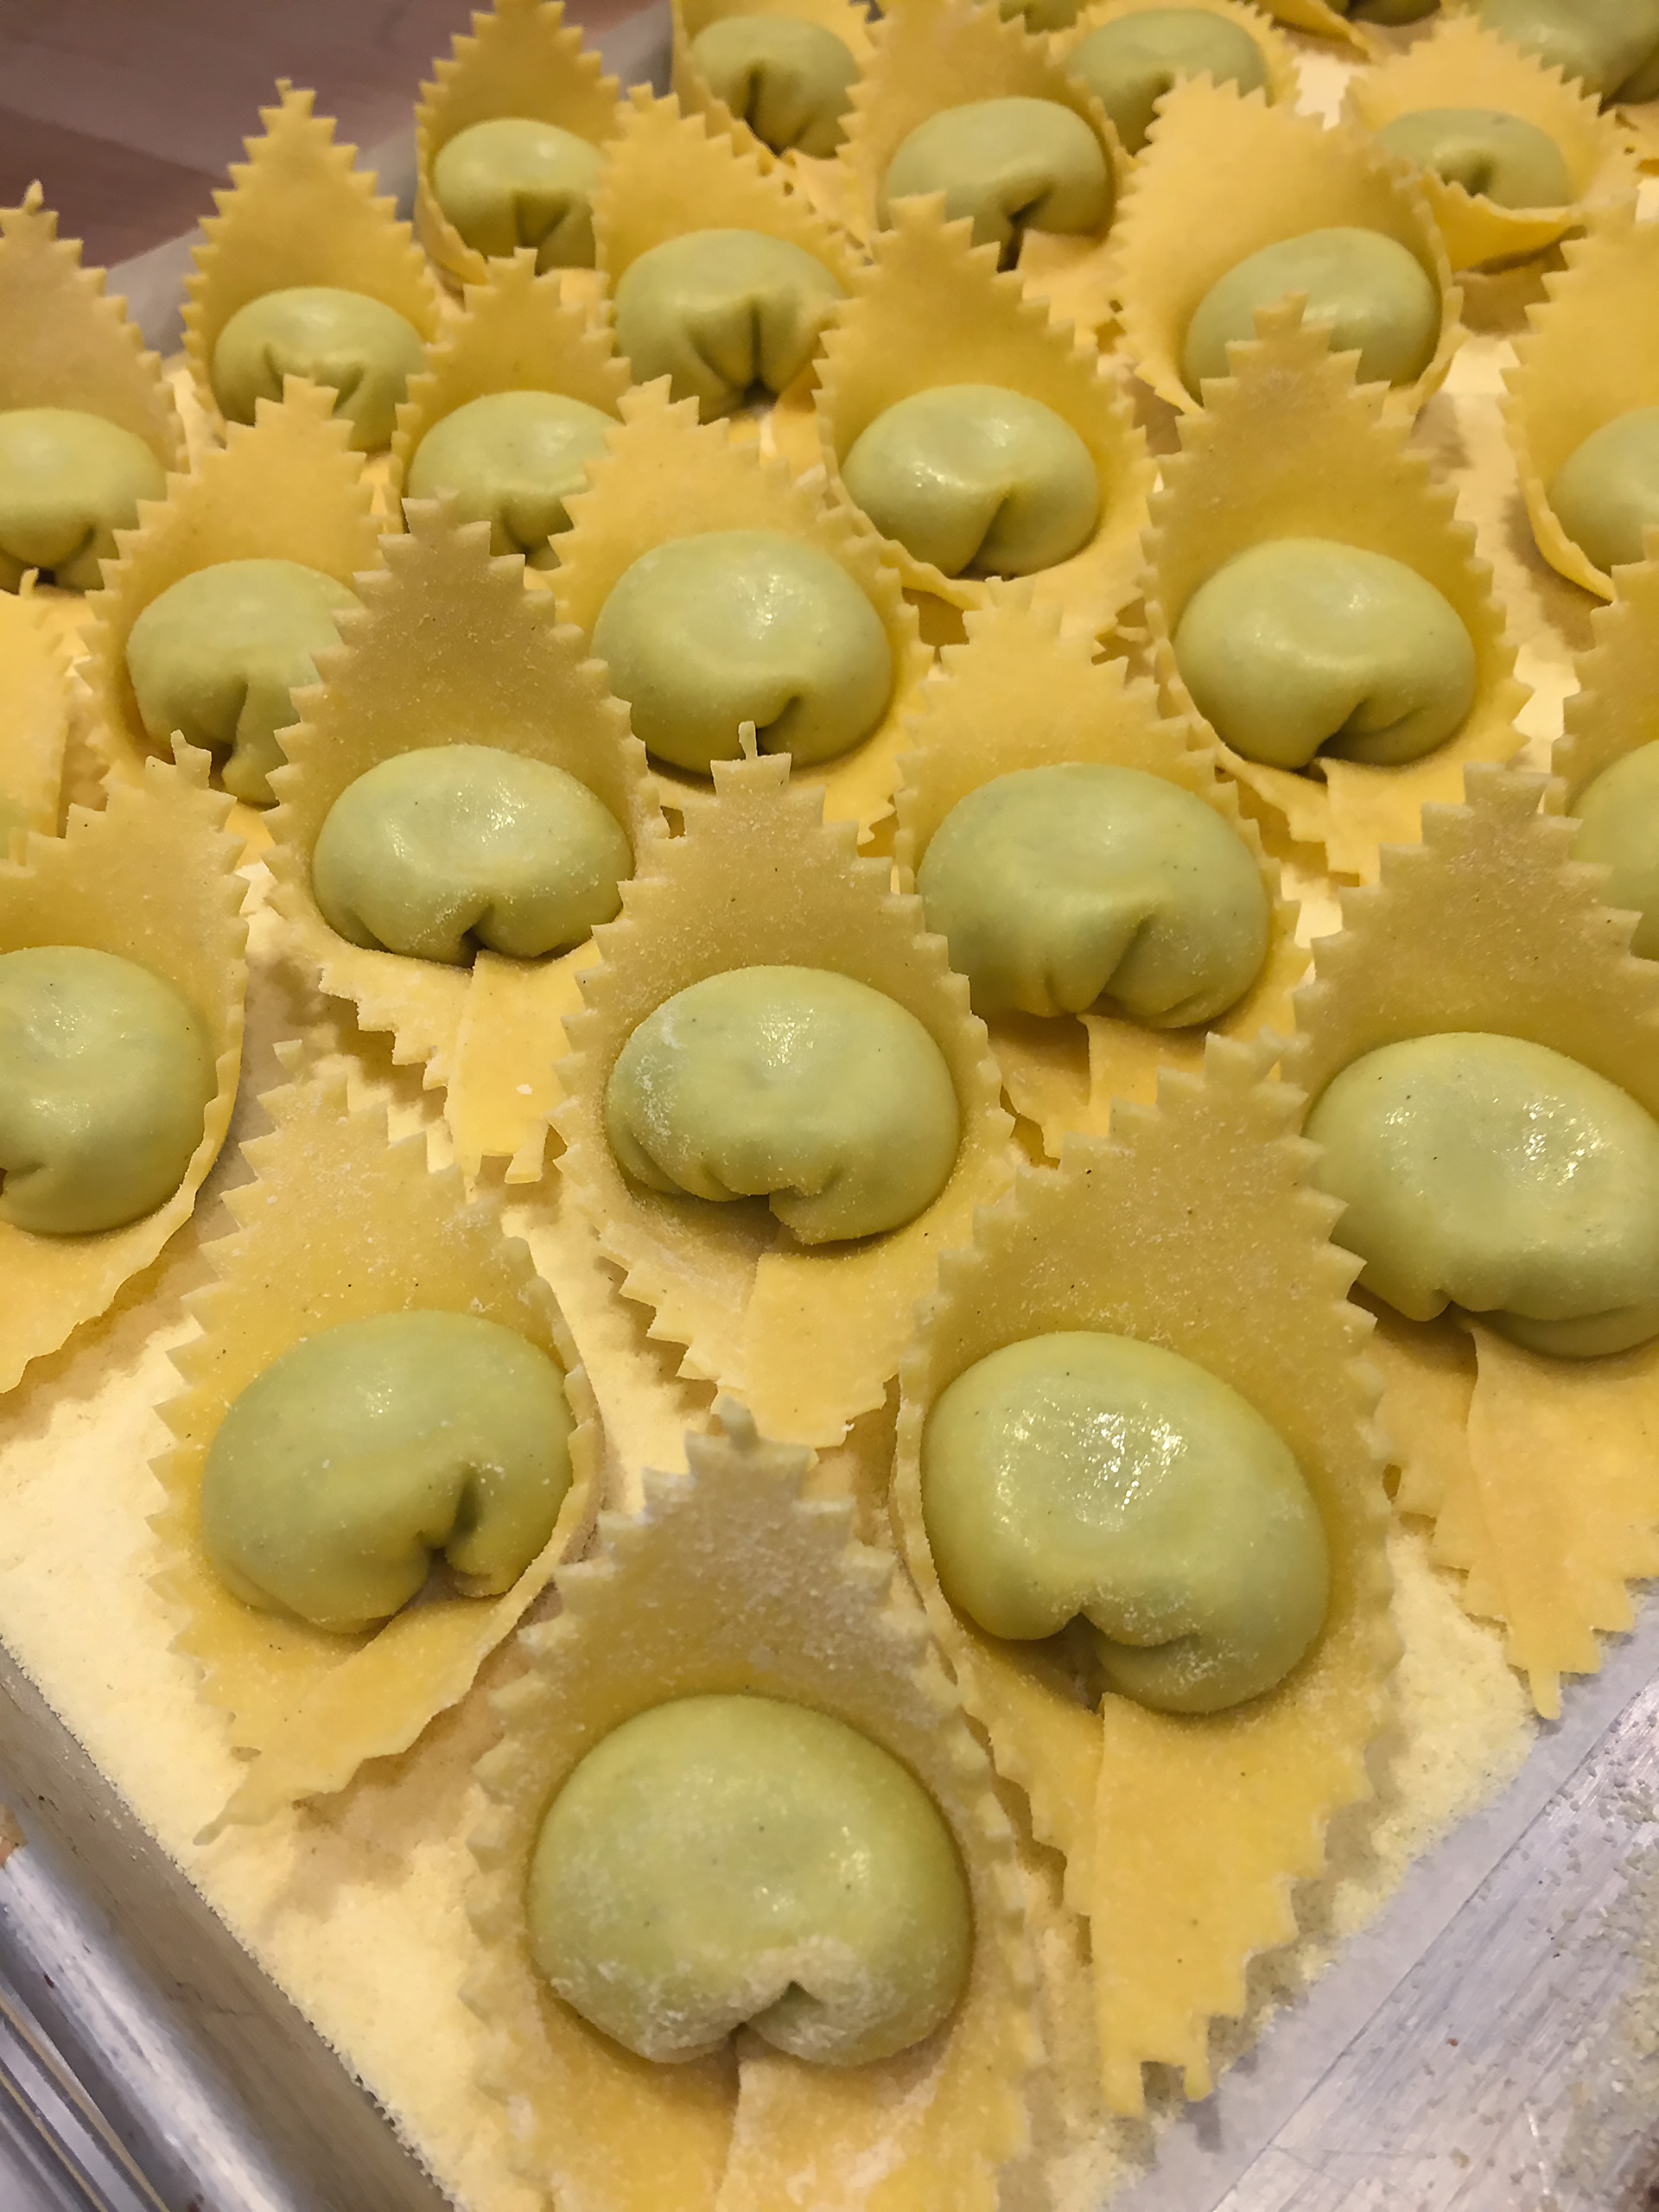 Sheep's milk ricotta-stuffed cappellacci